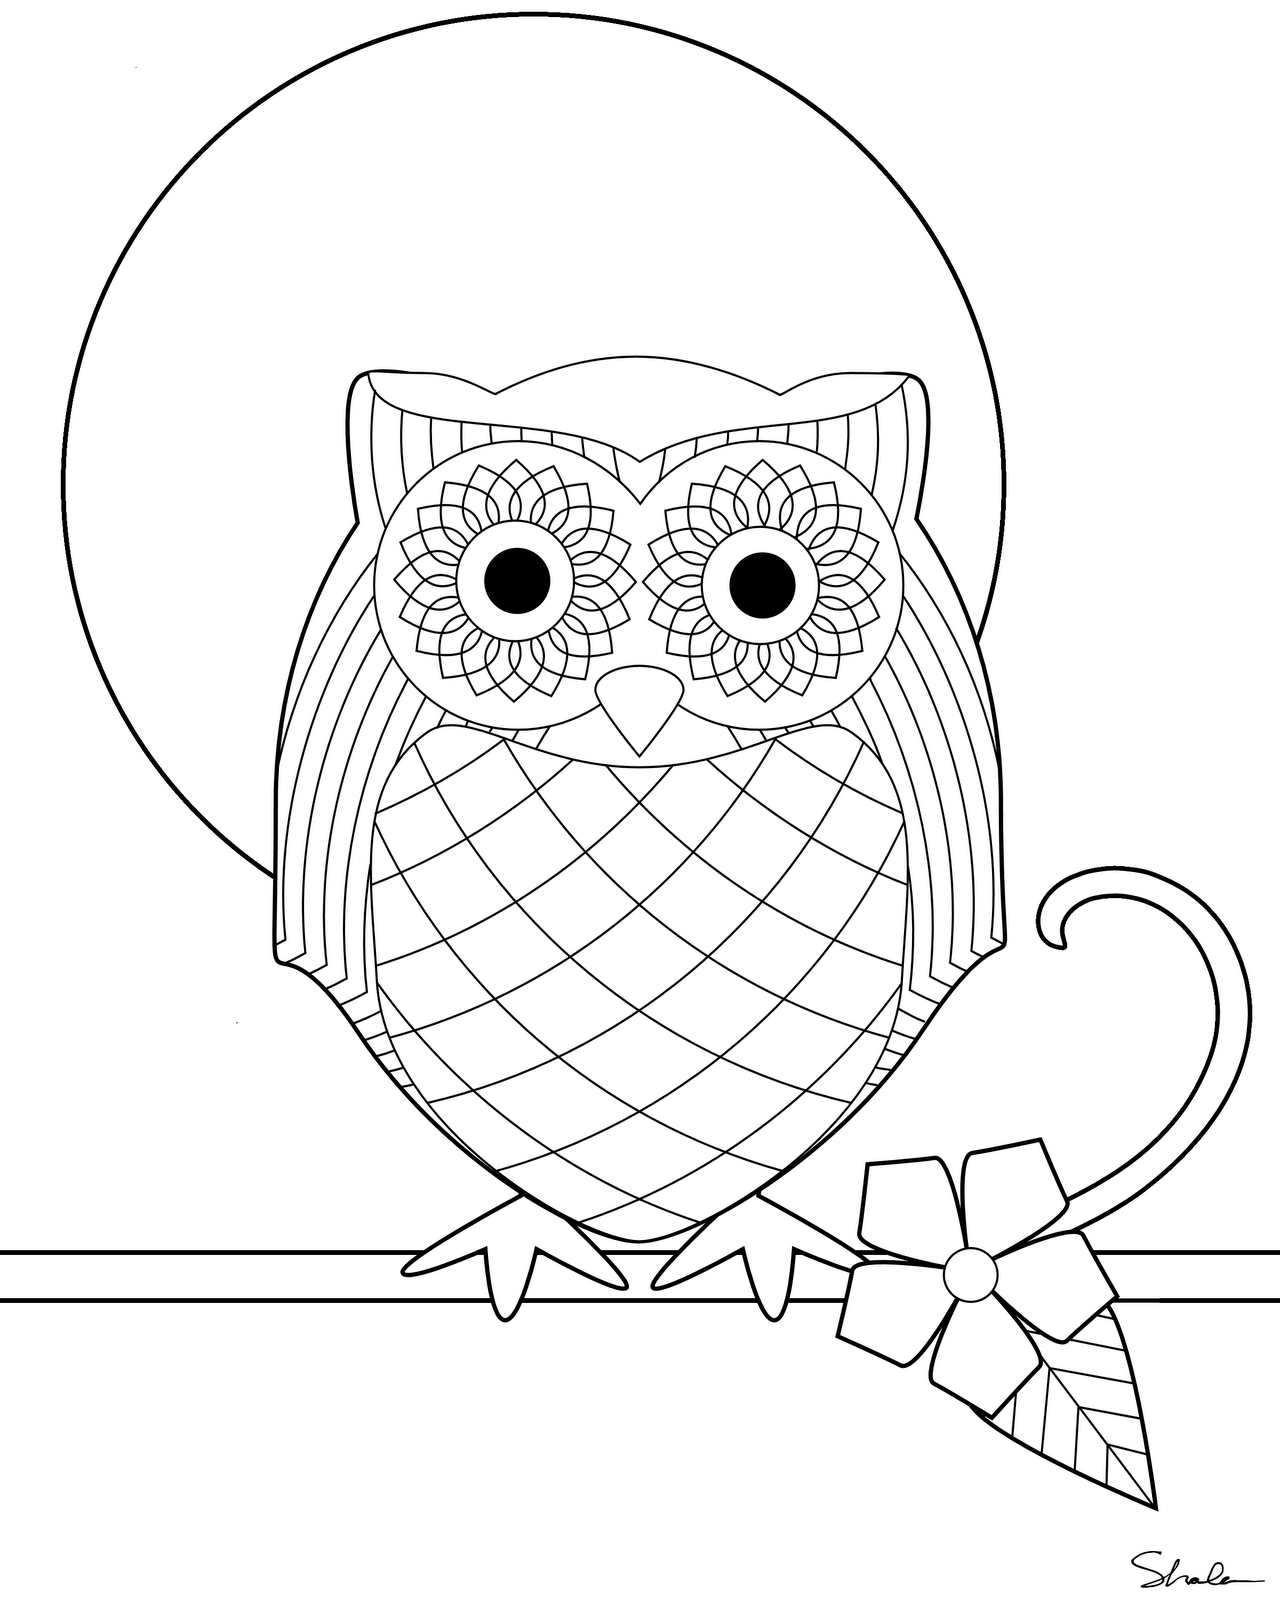 Awesome Owl To Print Out For The Kiddos To Color At A Origami Owl Jewelry Bar Where Children Are